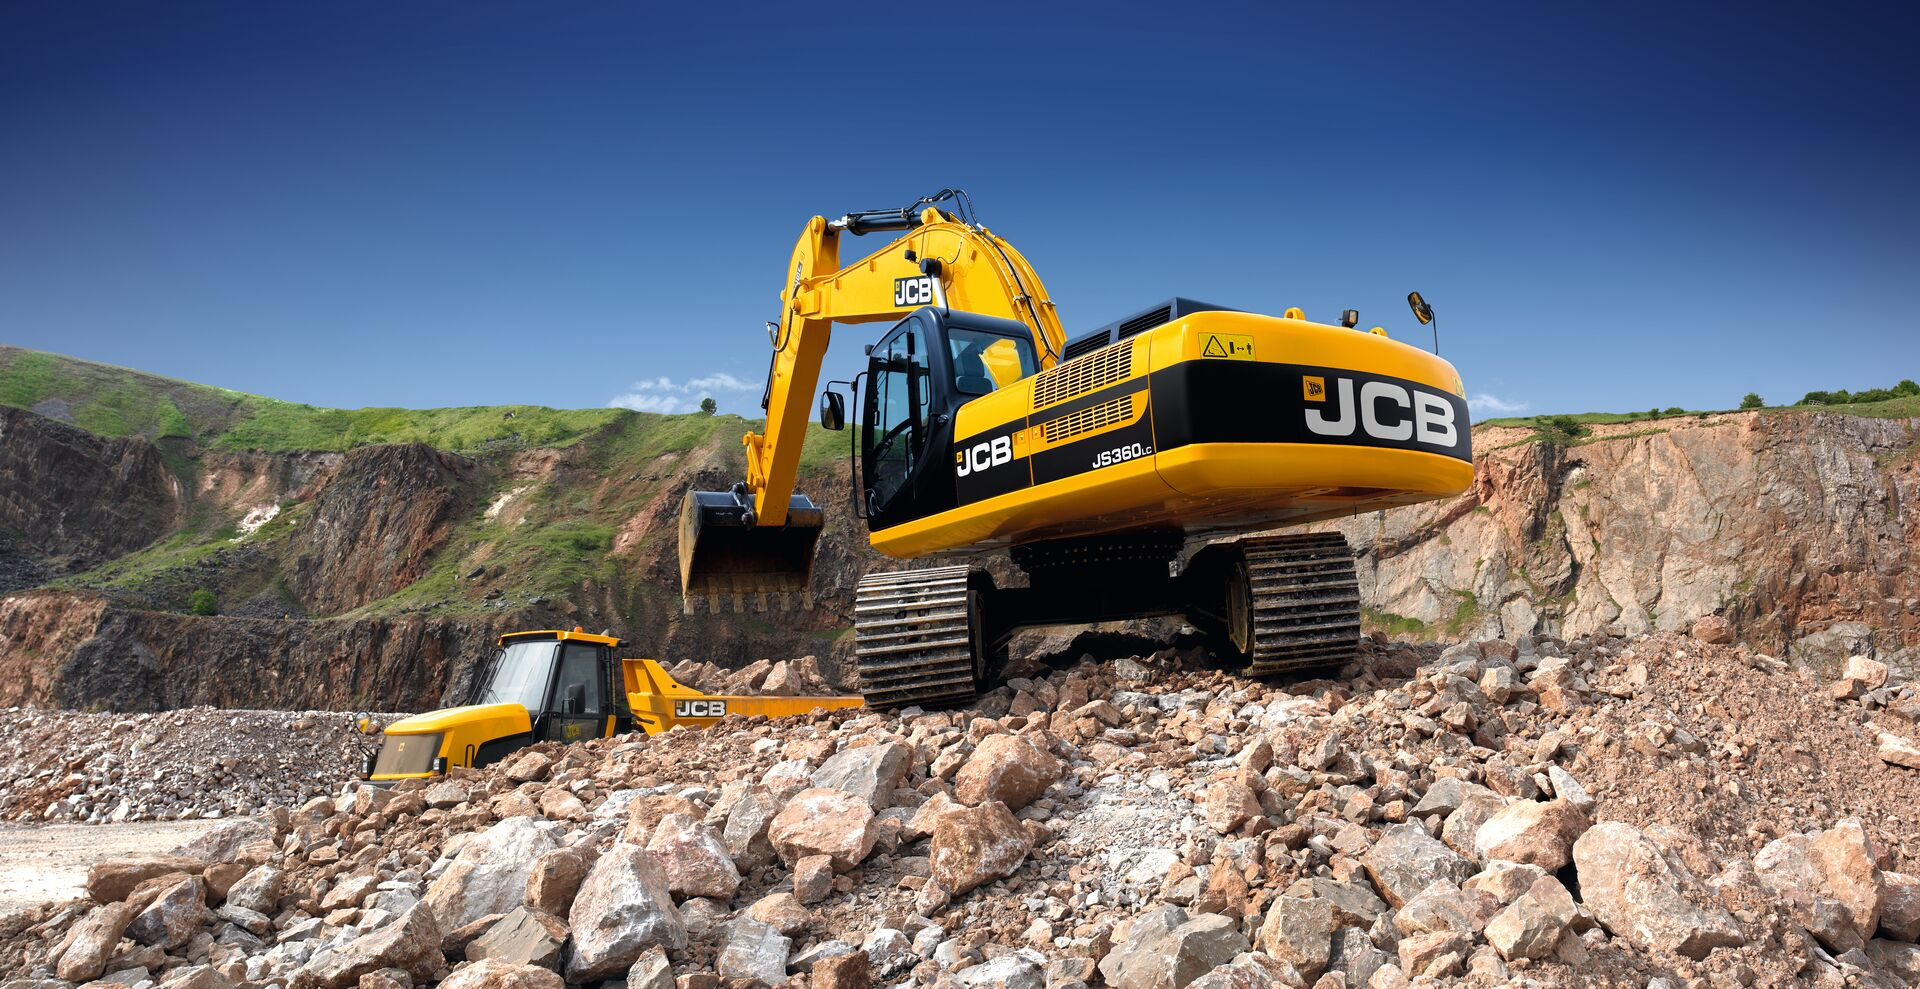 JCB equipment containing Ympress high strength steel